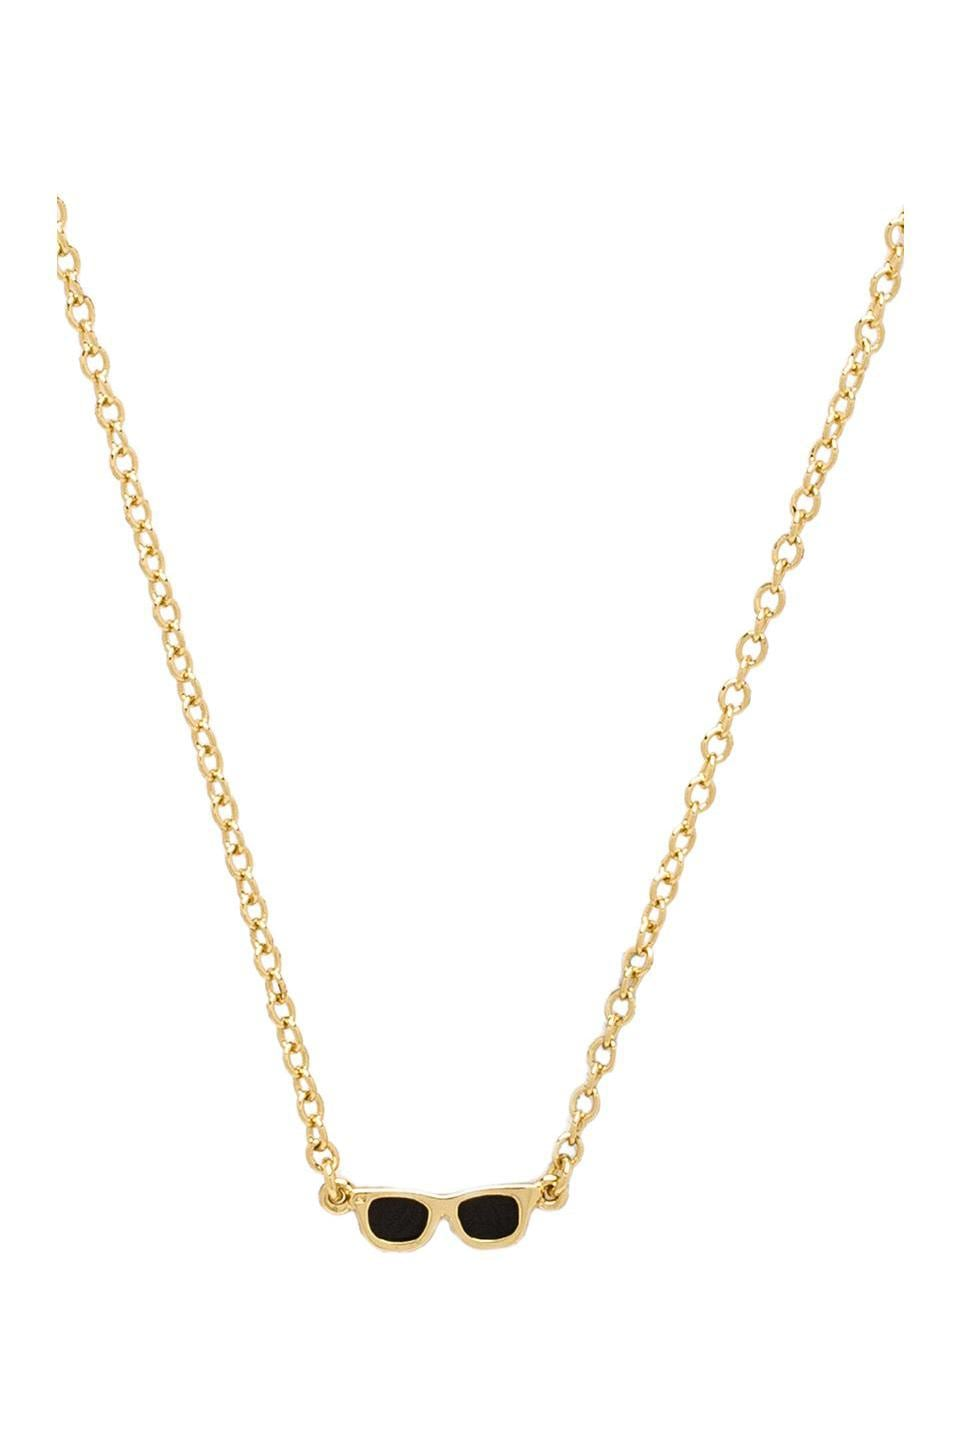 gorjana x REVOLVE Sunglass Necklace in Gold